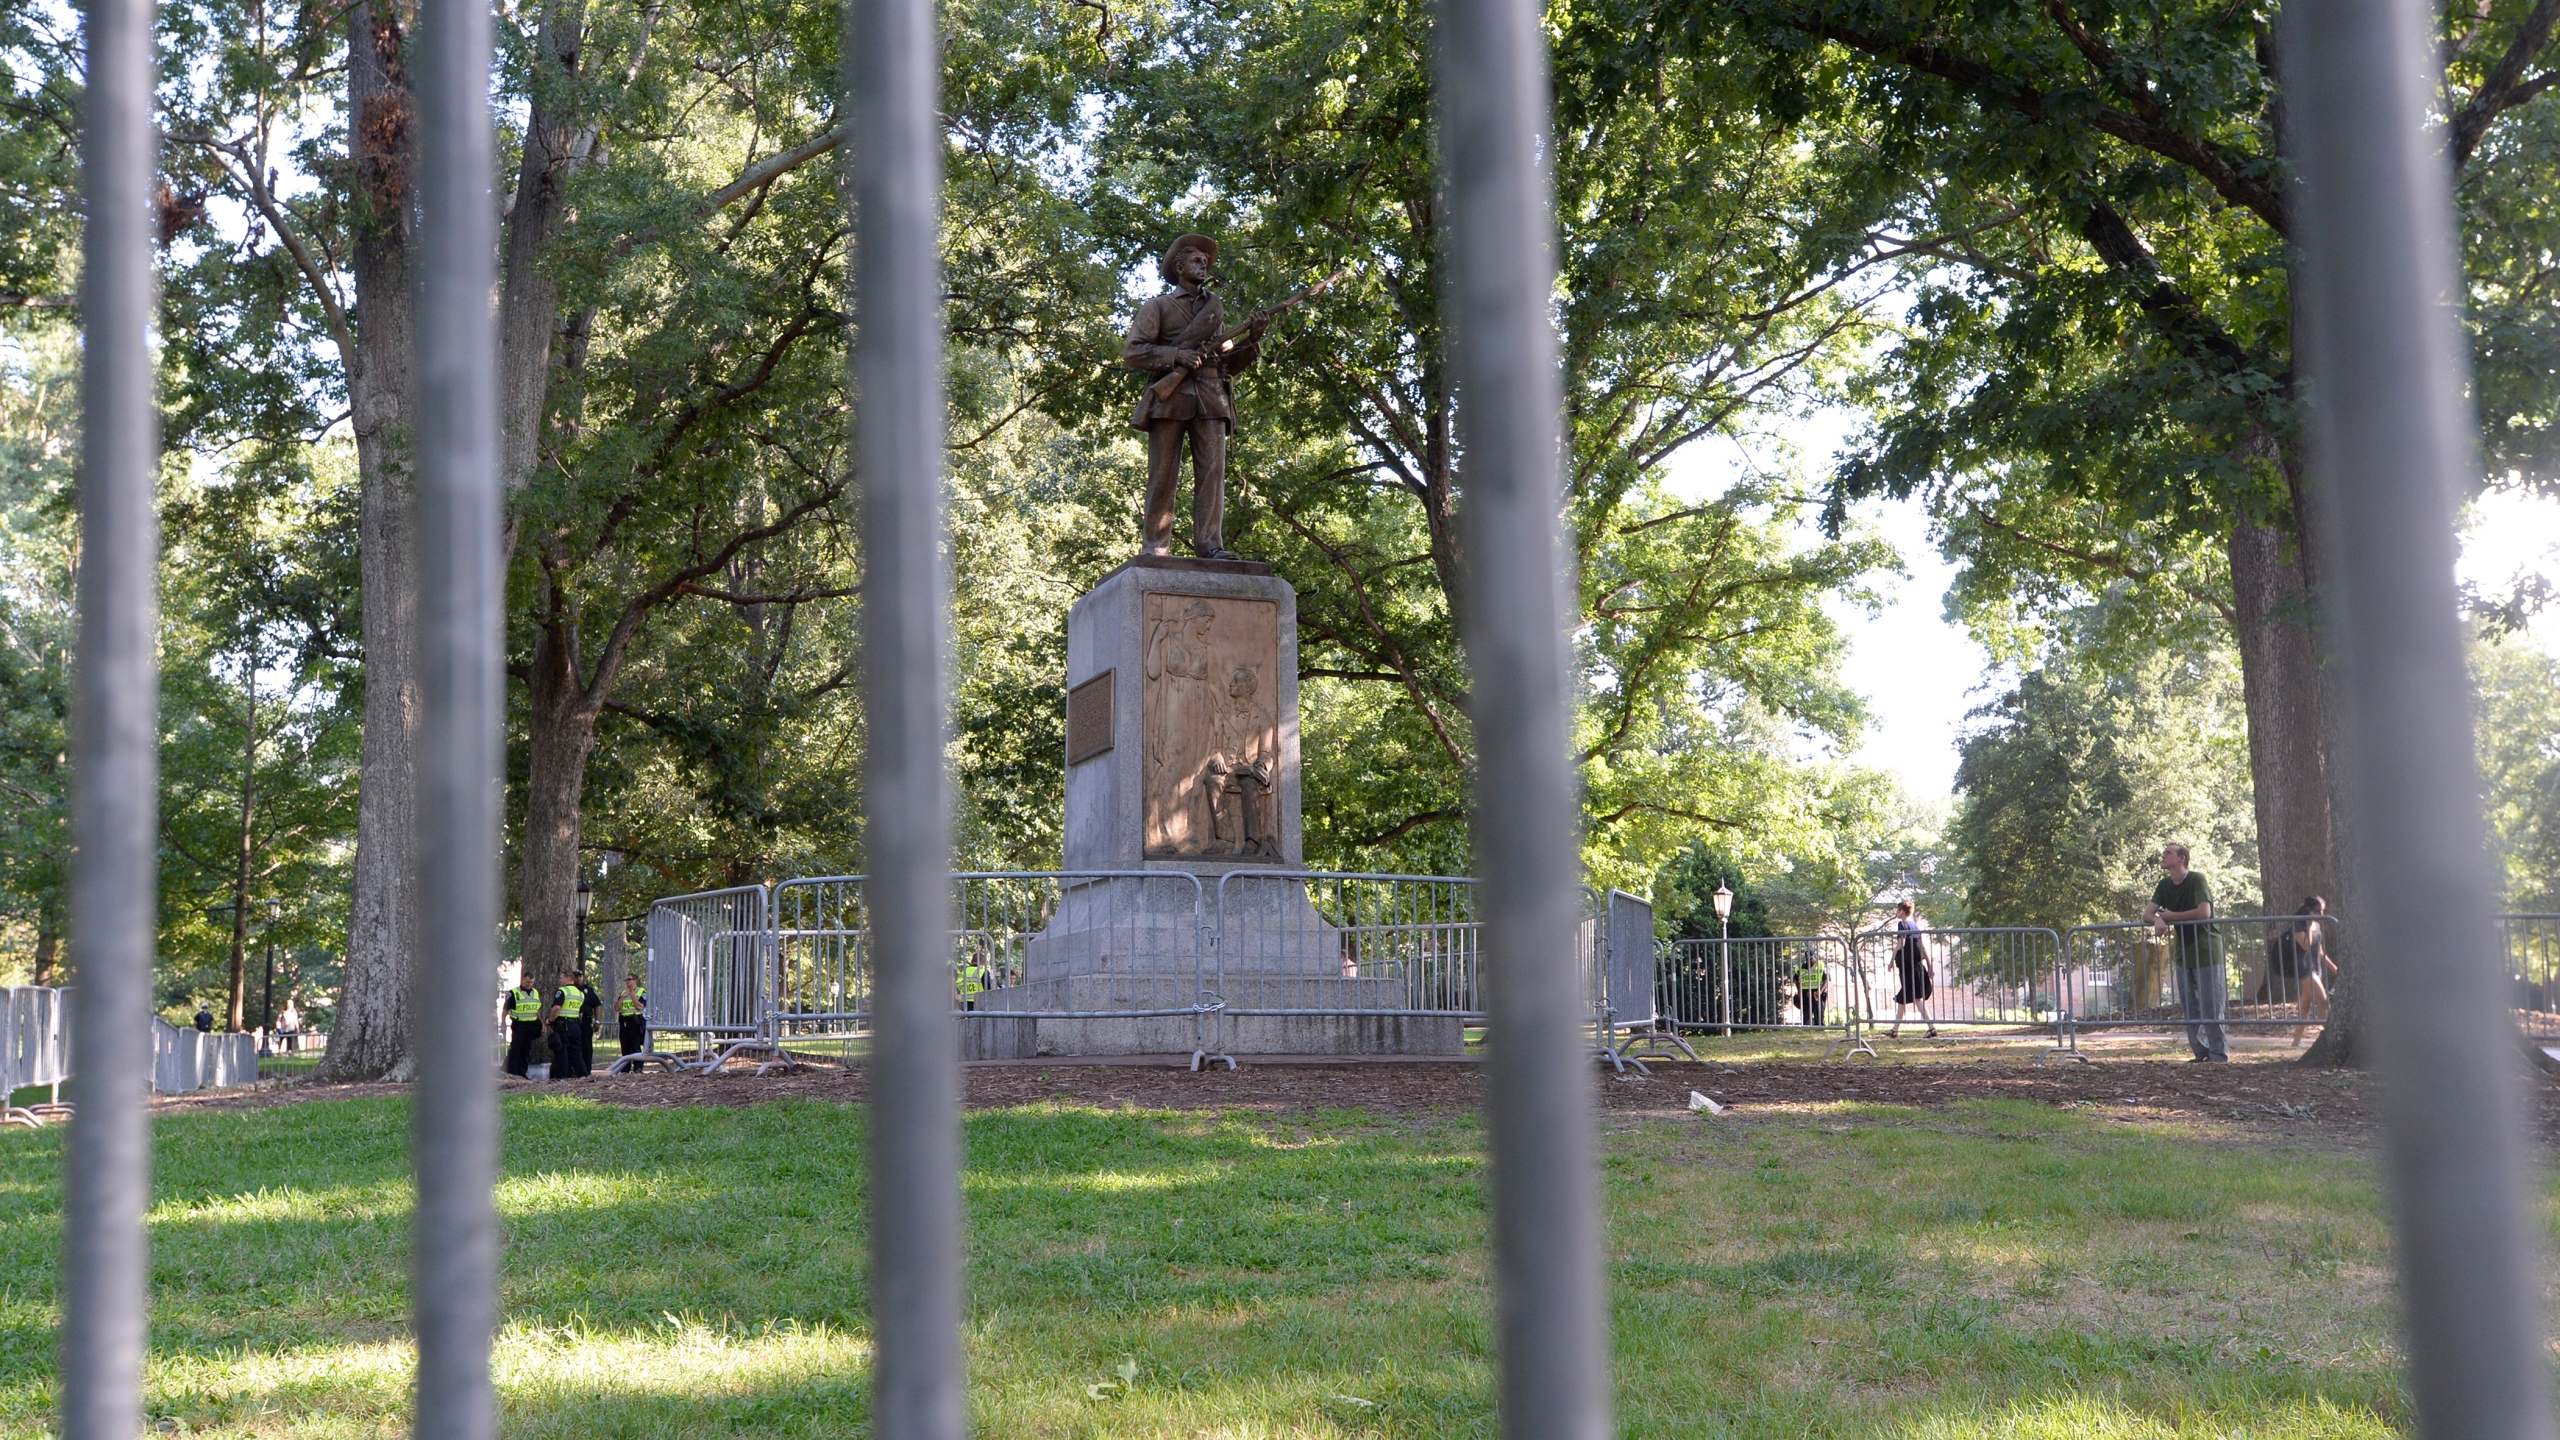 A Confederate statue, coined Silent Sam, is guarded by two layers of fence, chain and police on the campus of the University of North Carolina at Chapel Hill on Aug. 22, 2017. (Credit: Sara D. Davis / Getty Images)